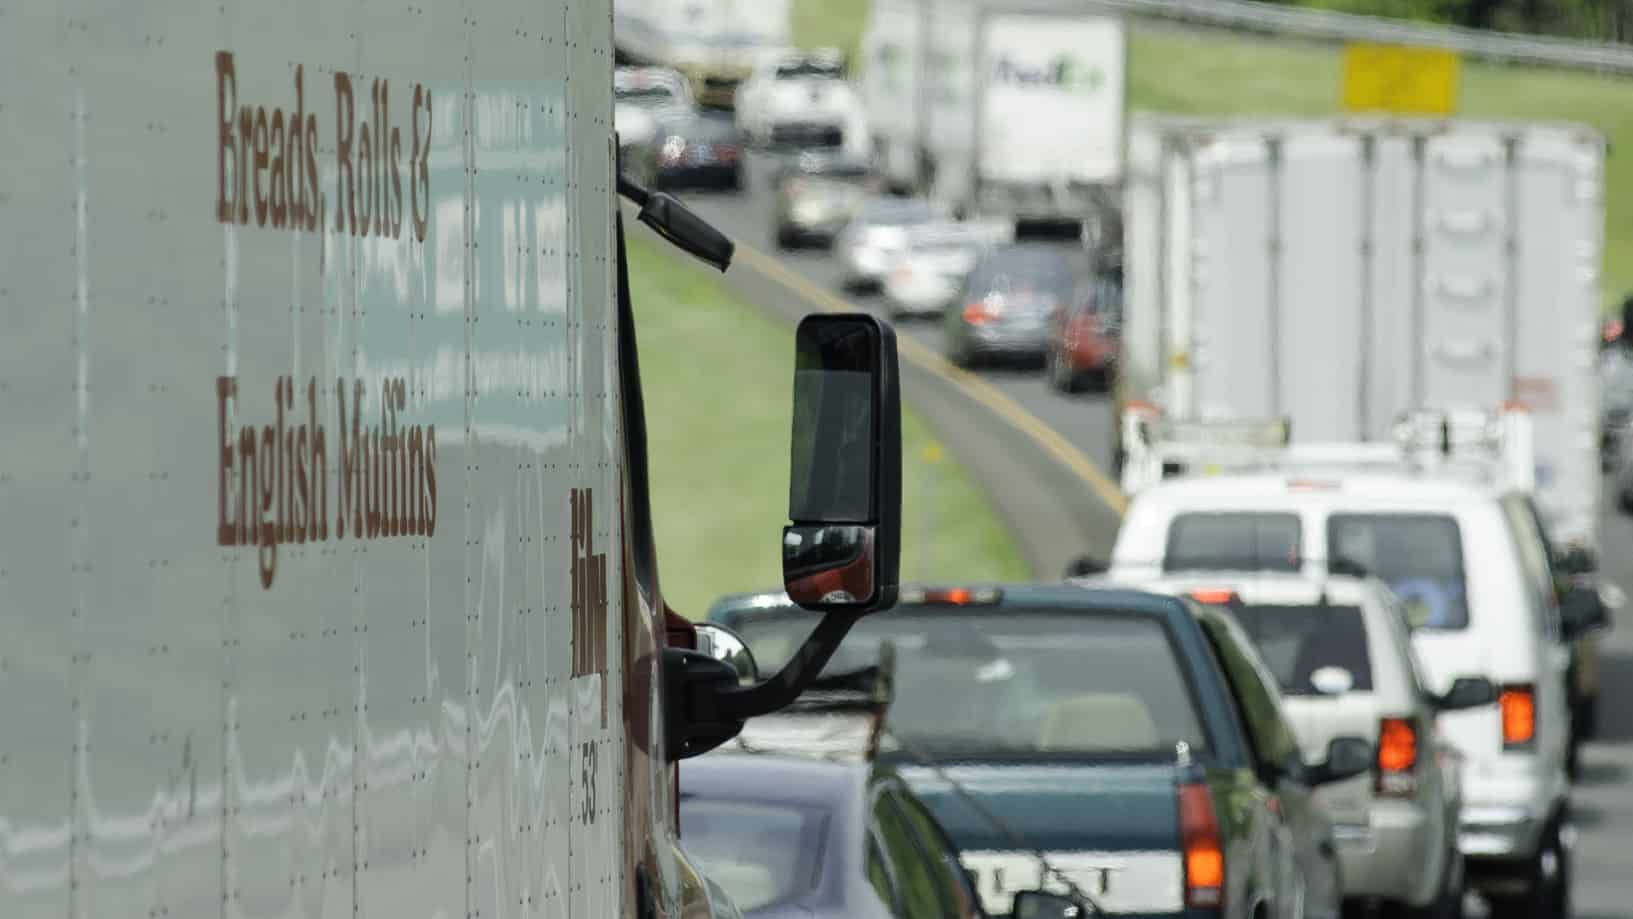 Today's pickup: Trucks merit no mention in analysis of road